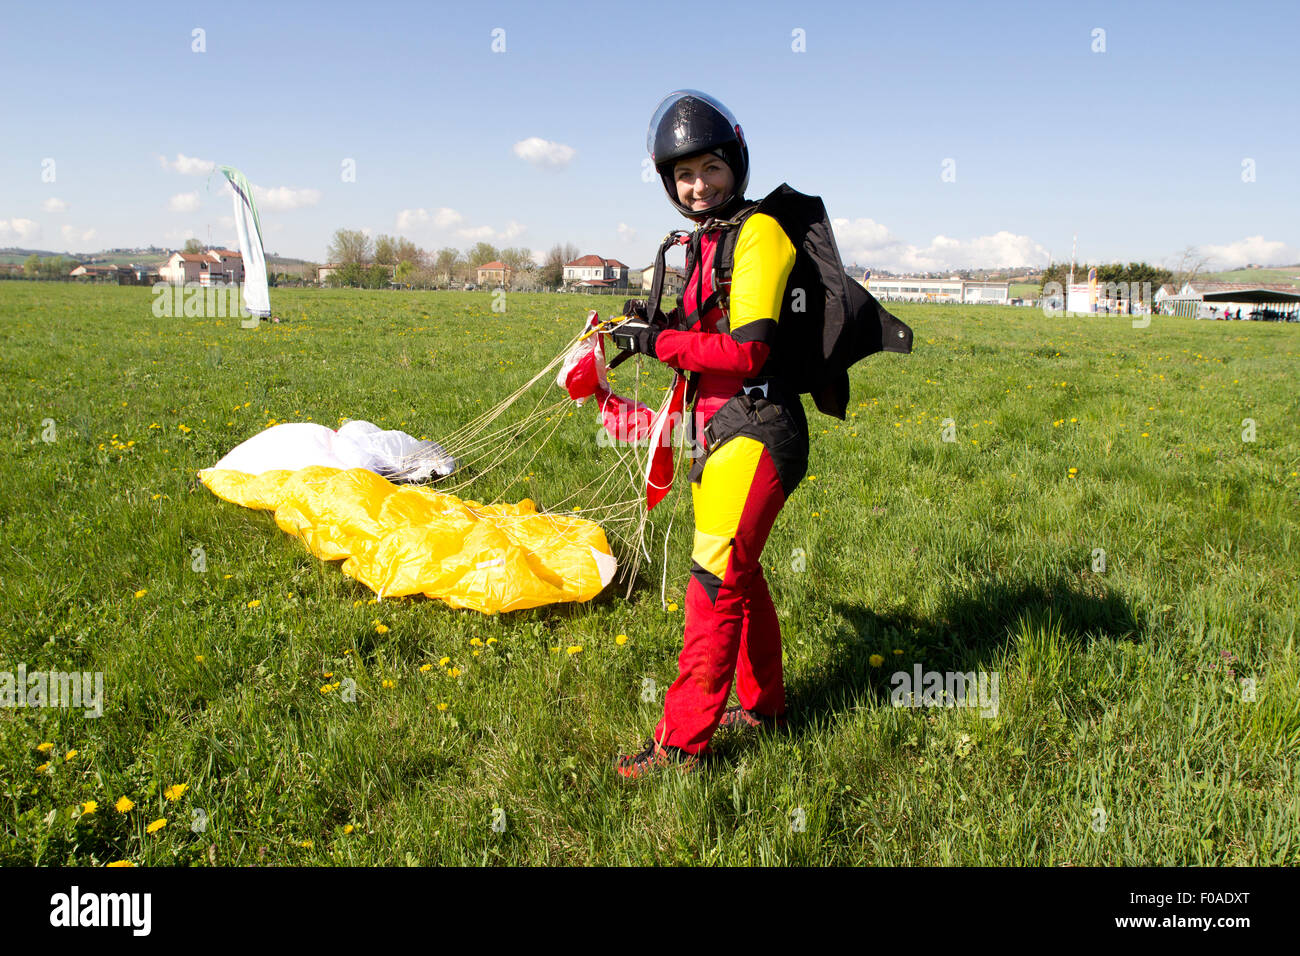 Happy skydiver after jump - Stock Image